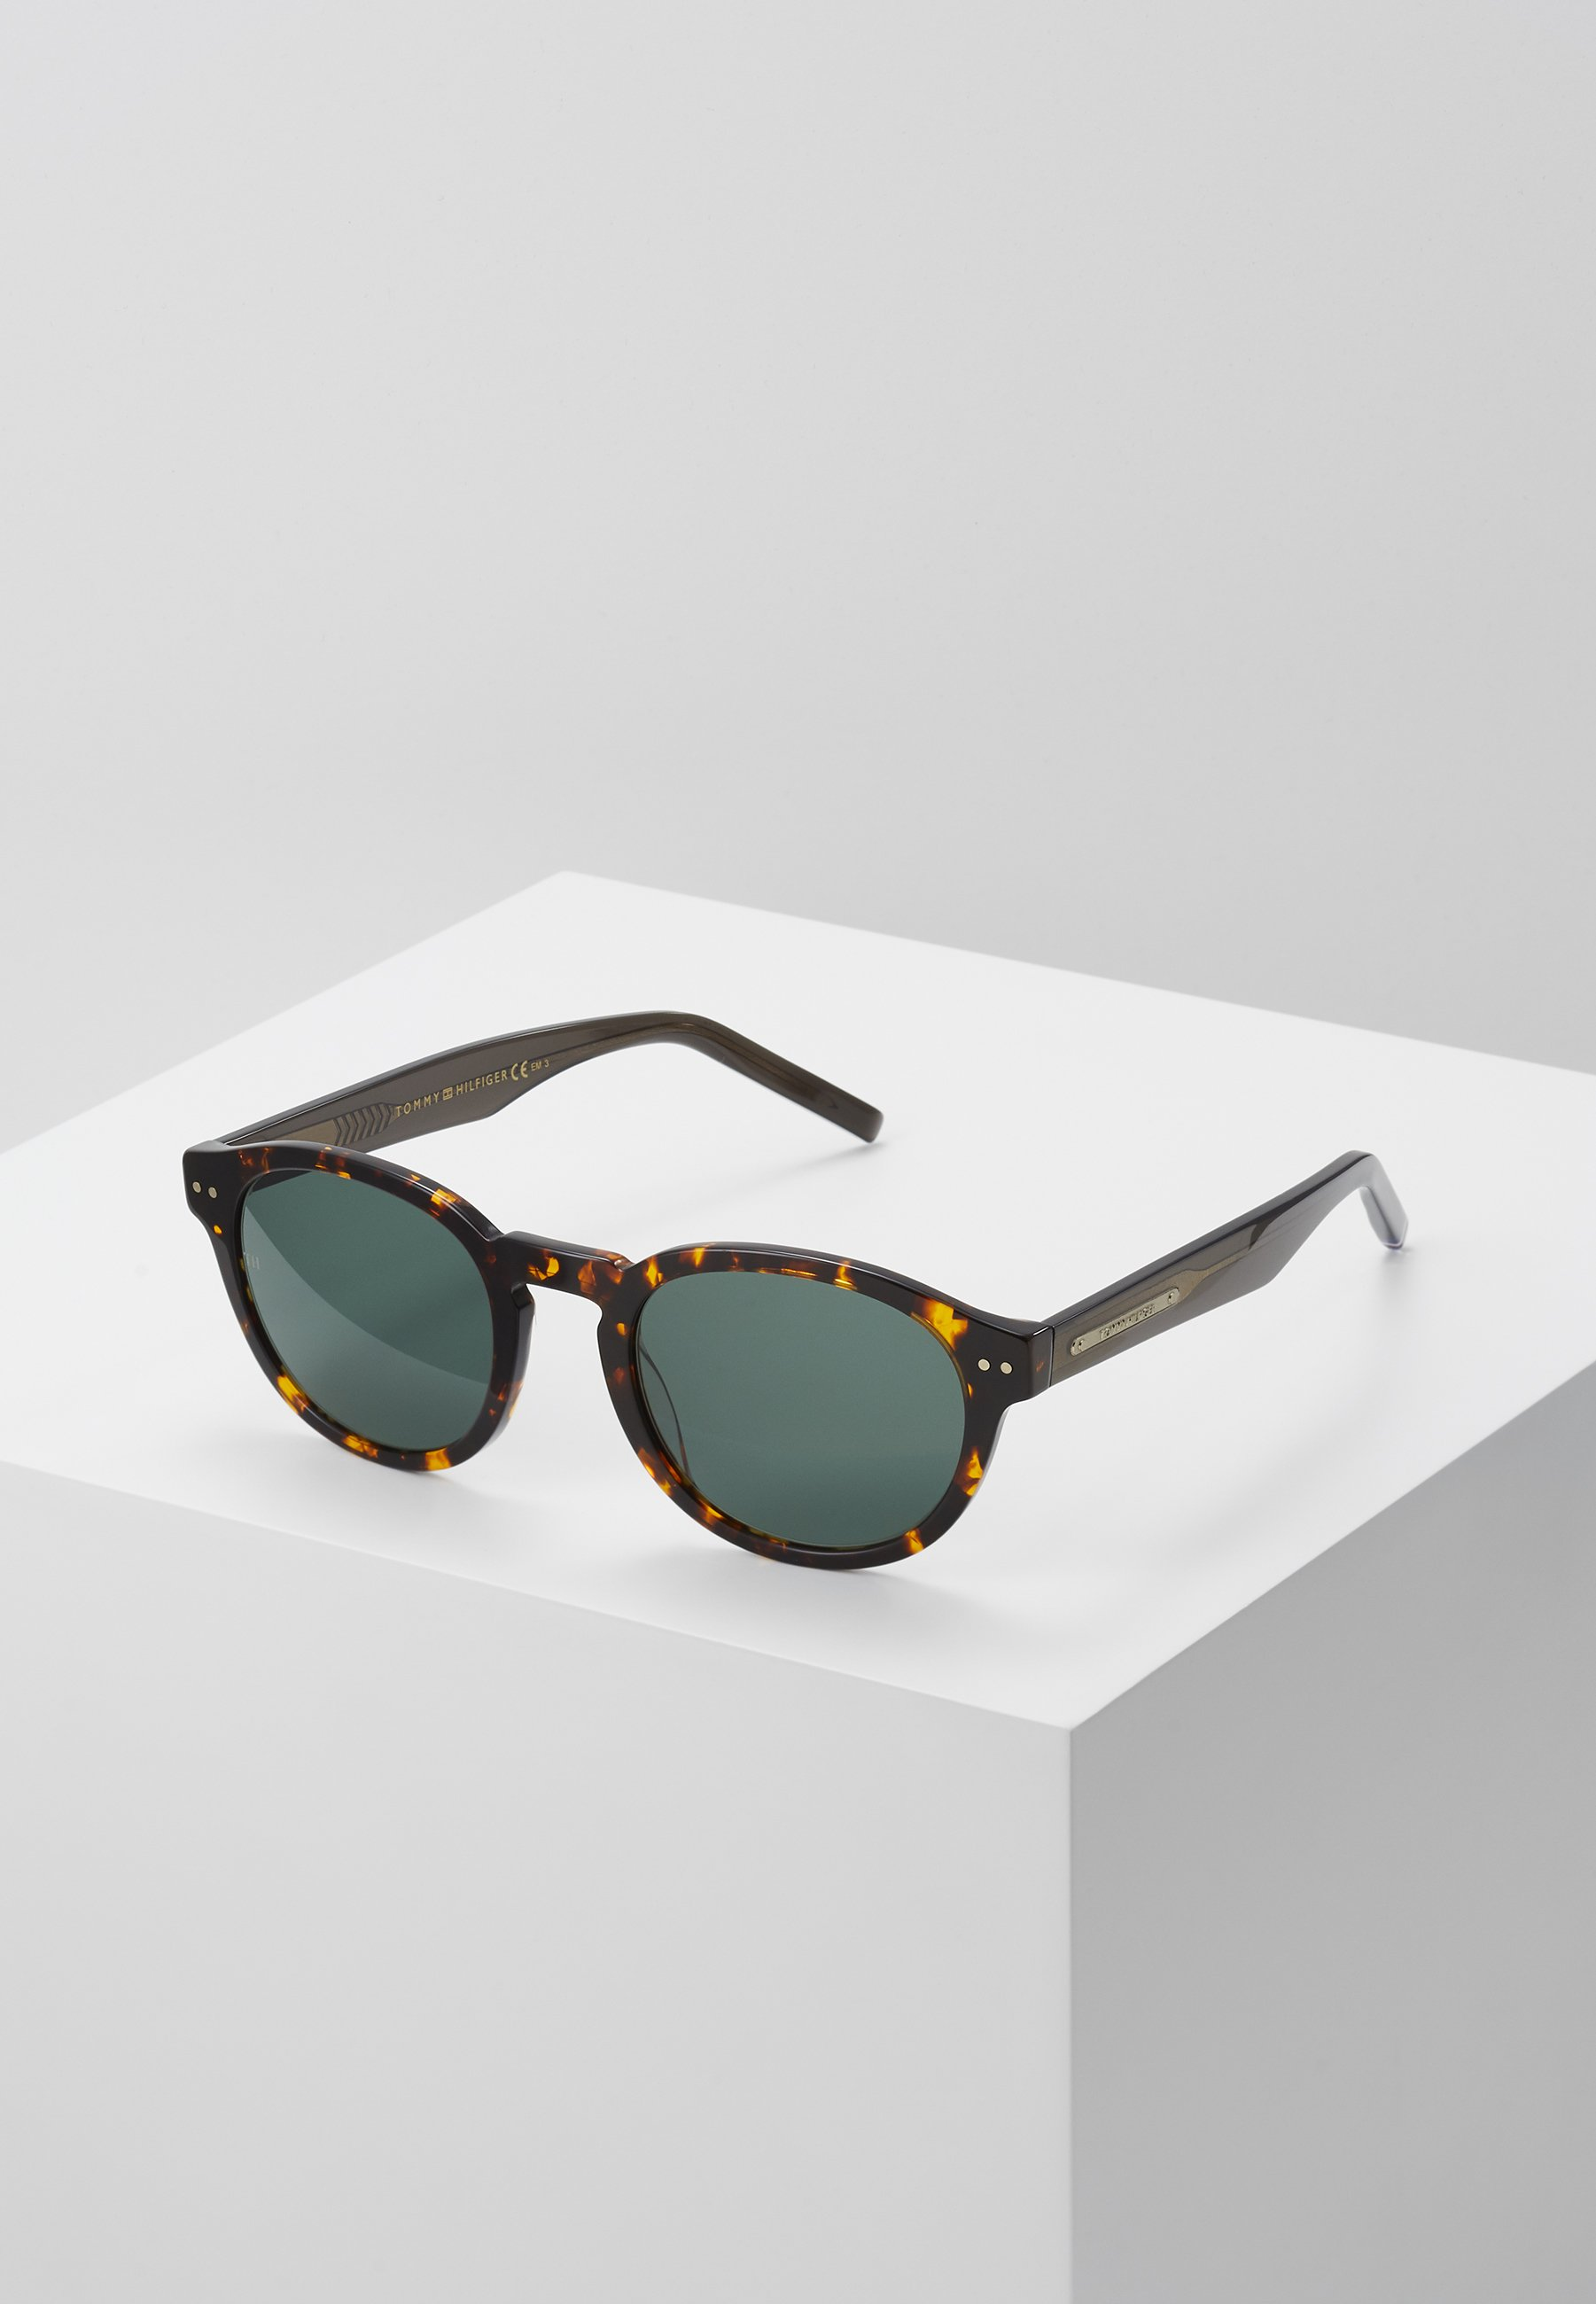 Tommy Hilfiger Sunglasses - brown